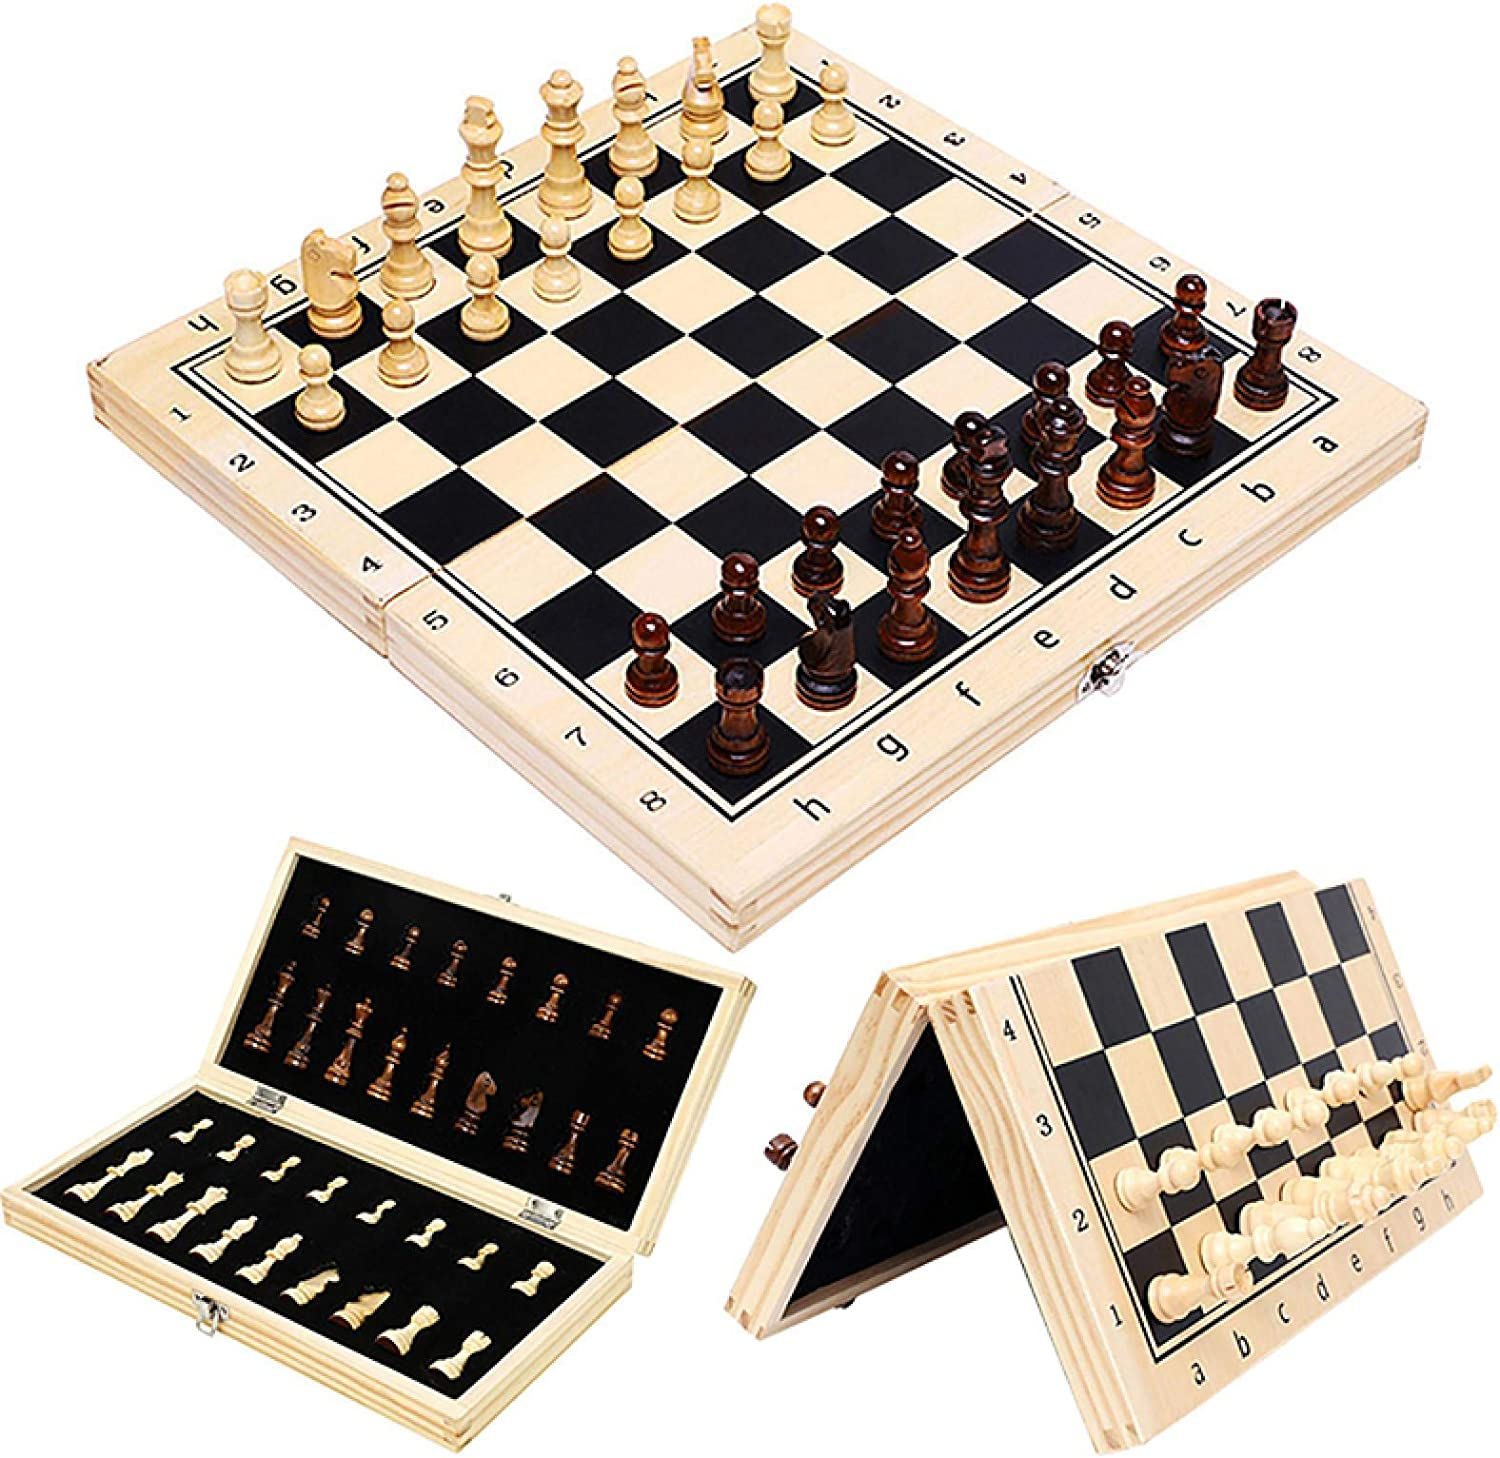 100% quality warranty FIBVGFXD Wooden Chess Sets Magnetic Folding Large low-pricing